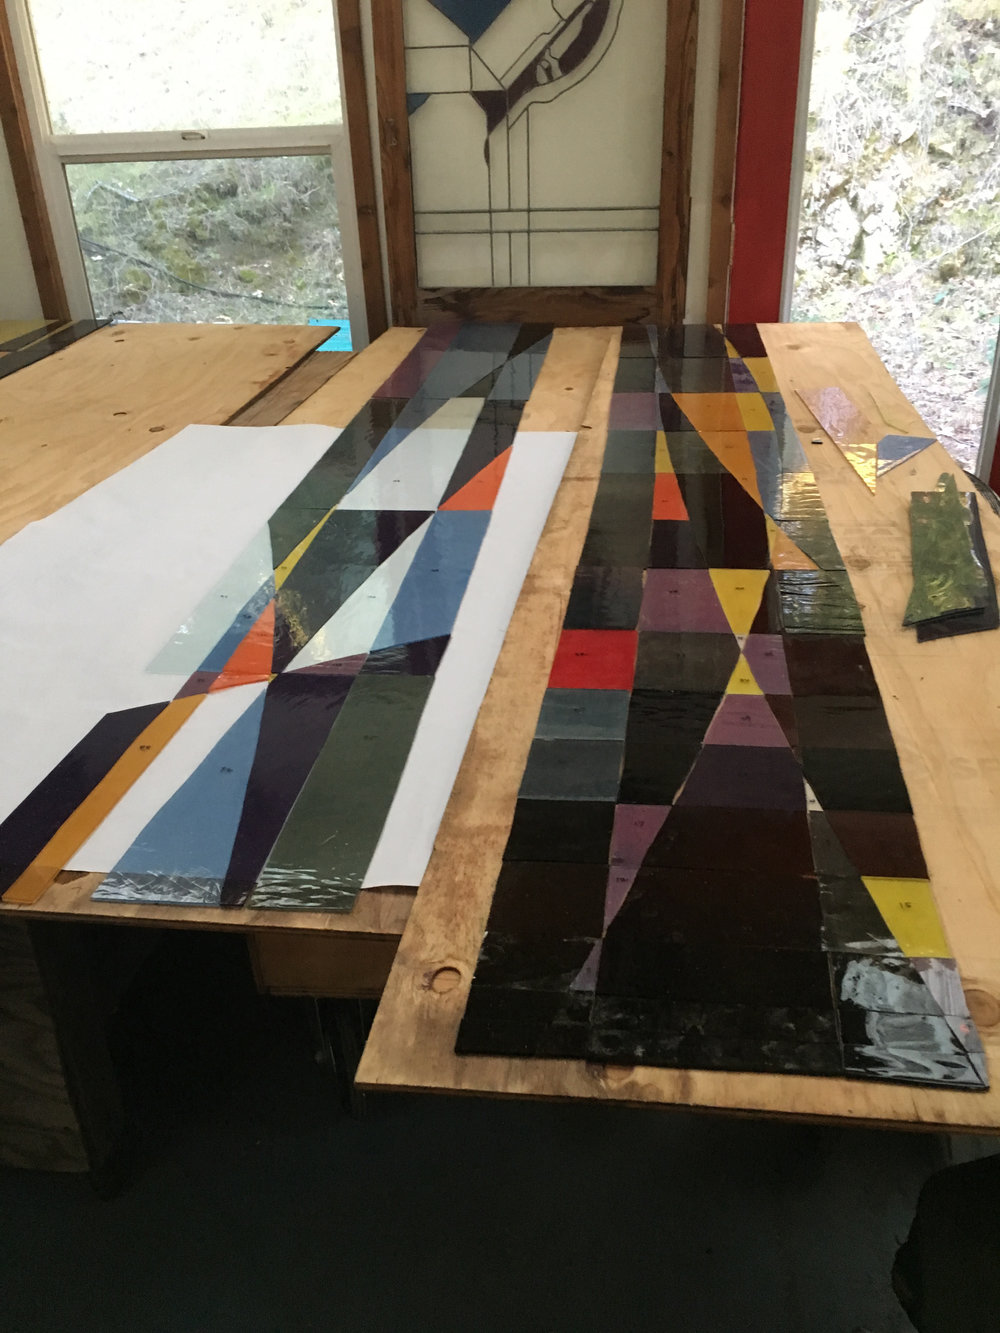 Pieces of window are cut and laid out on a duplicate pattern.